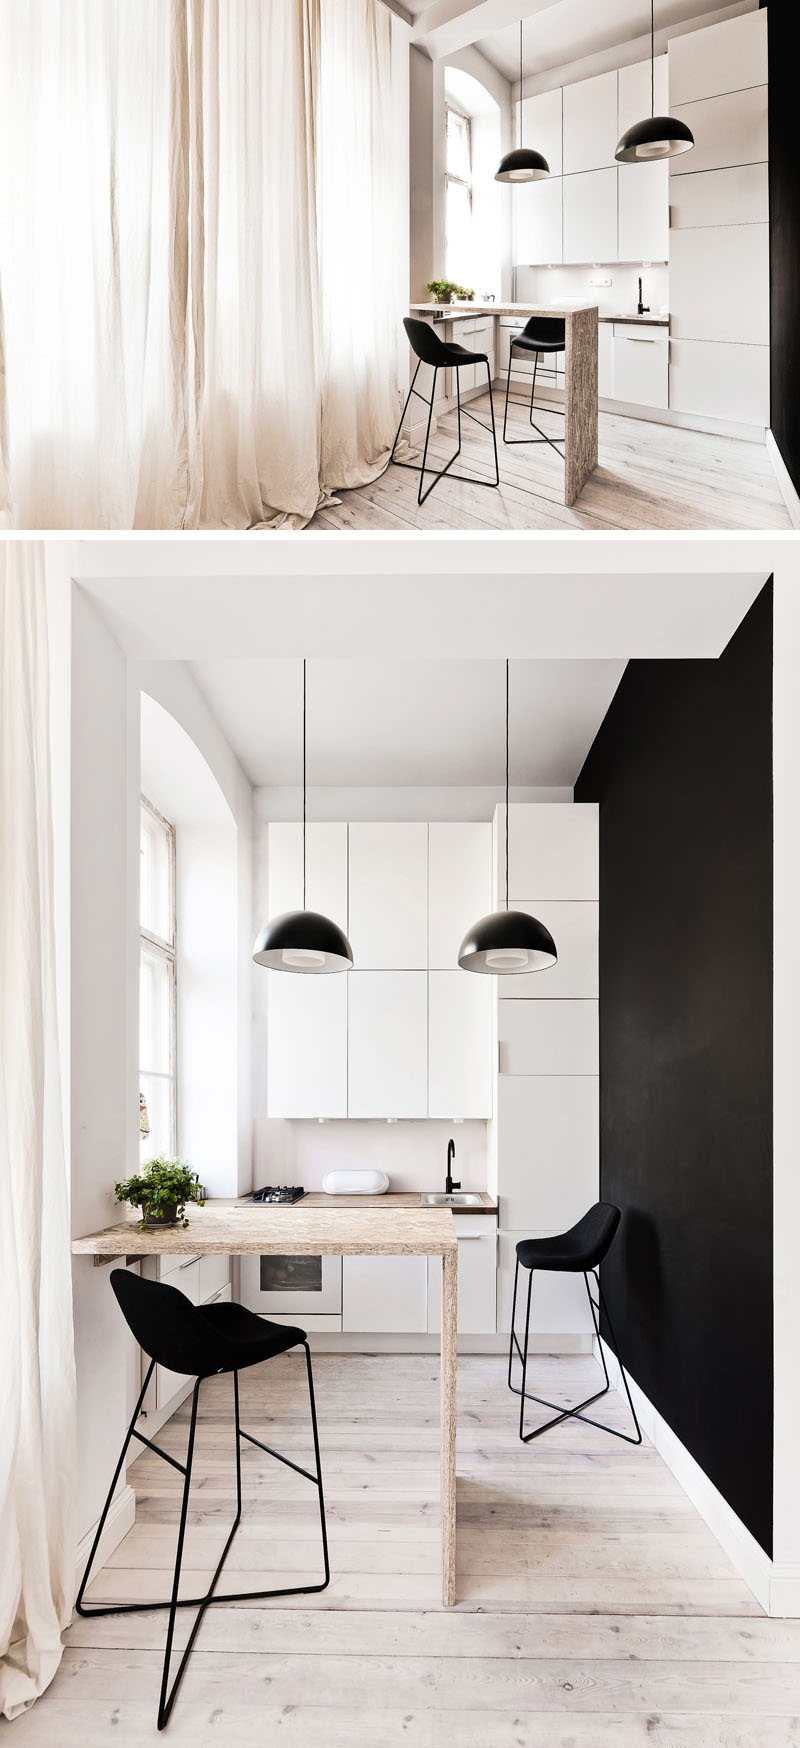 Lofty Vision: Clever Tiny Apartment Design is High on Style